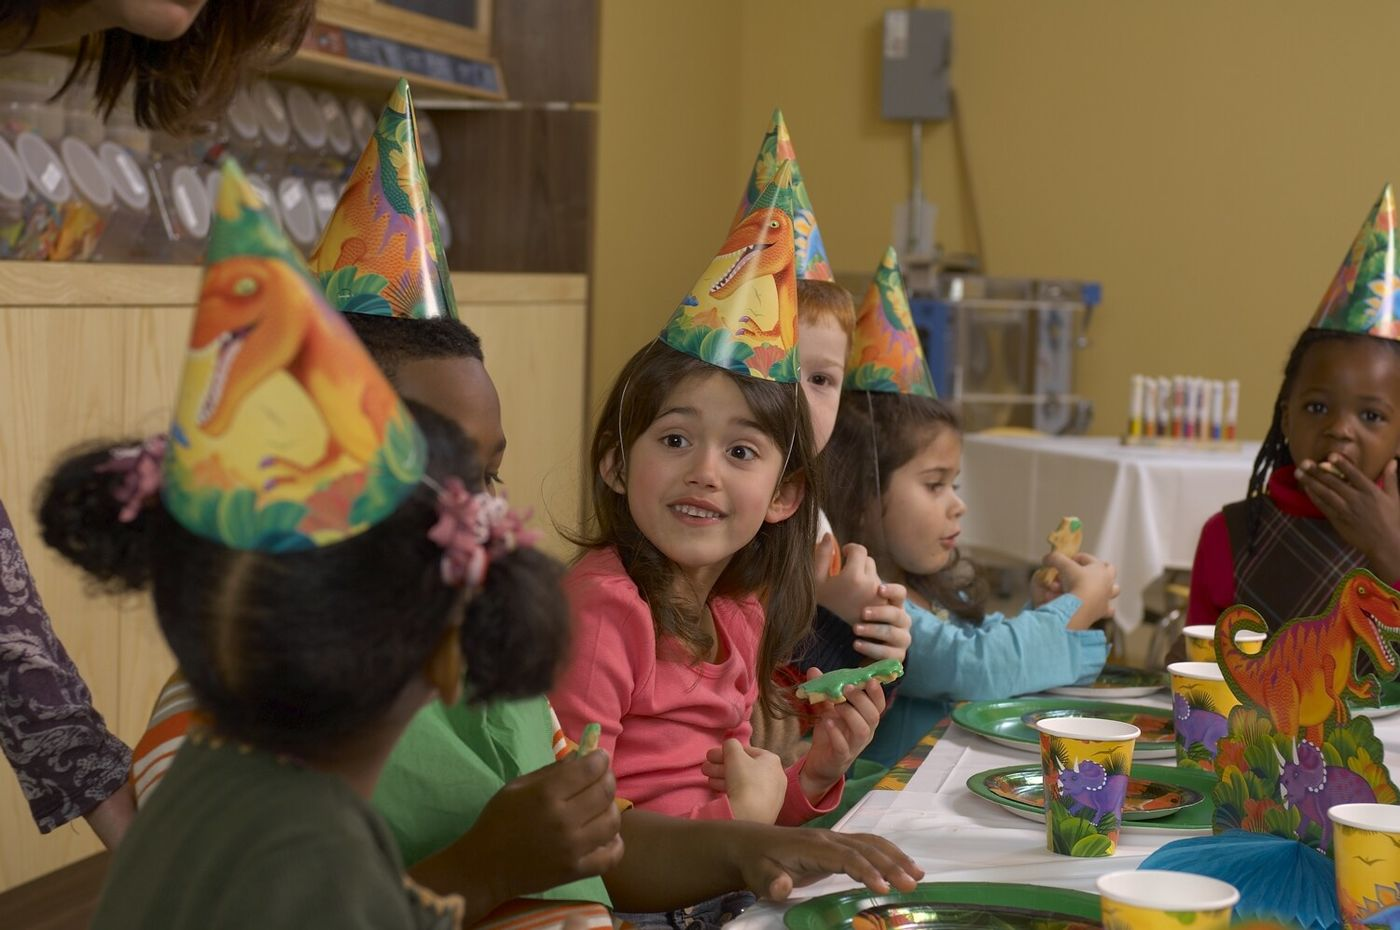 A Group Of Children Wearing Party Hats Seated Around Table With Decoration